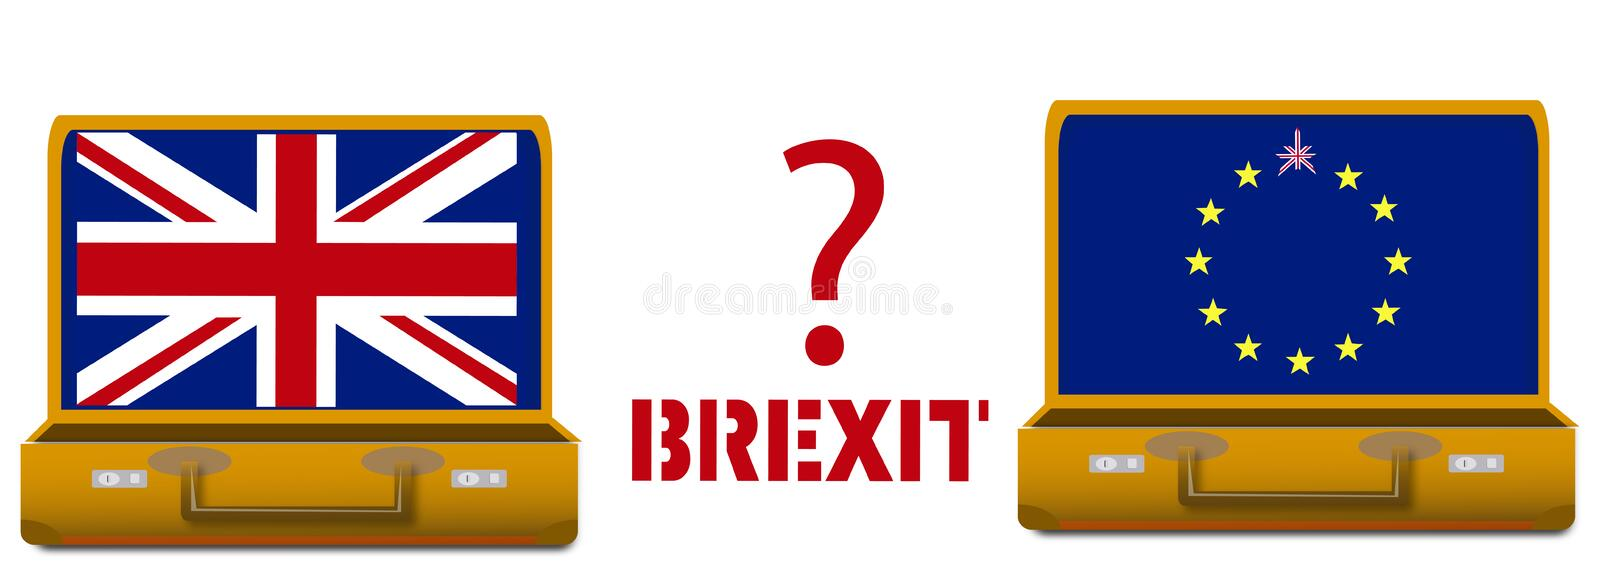 Brexit Reino Unido fotos de stock royalty free